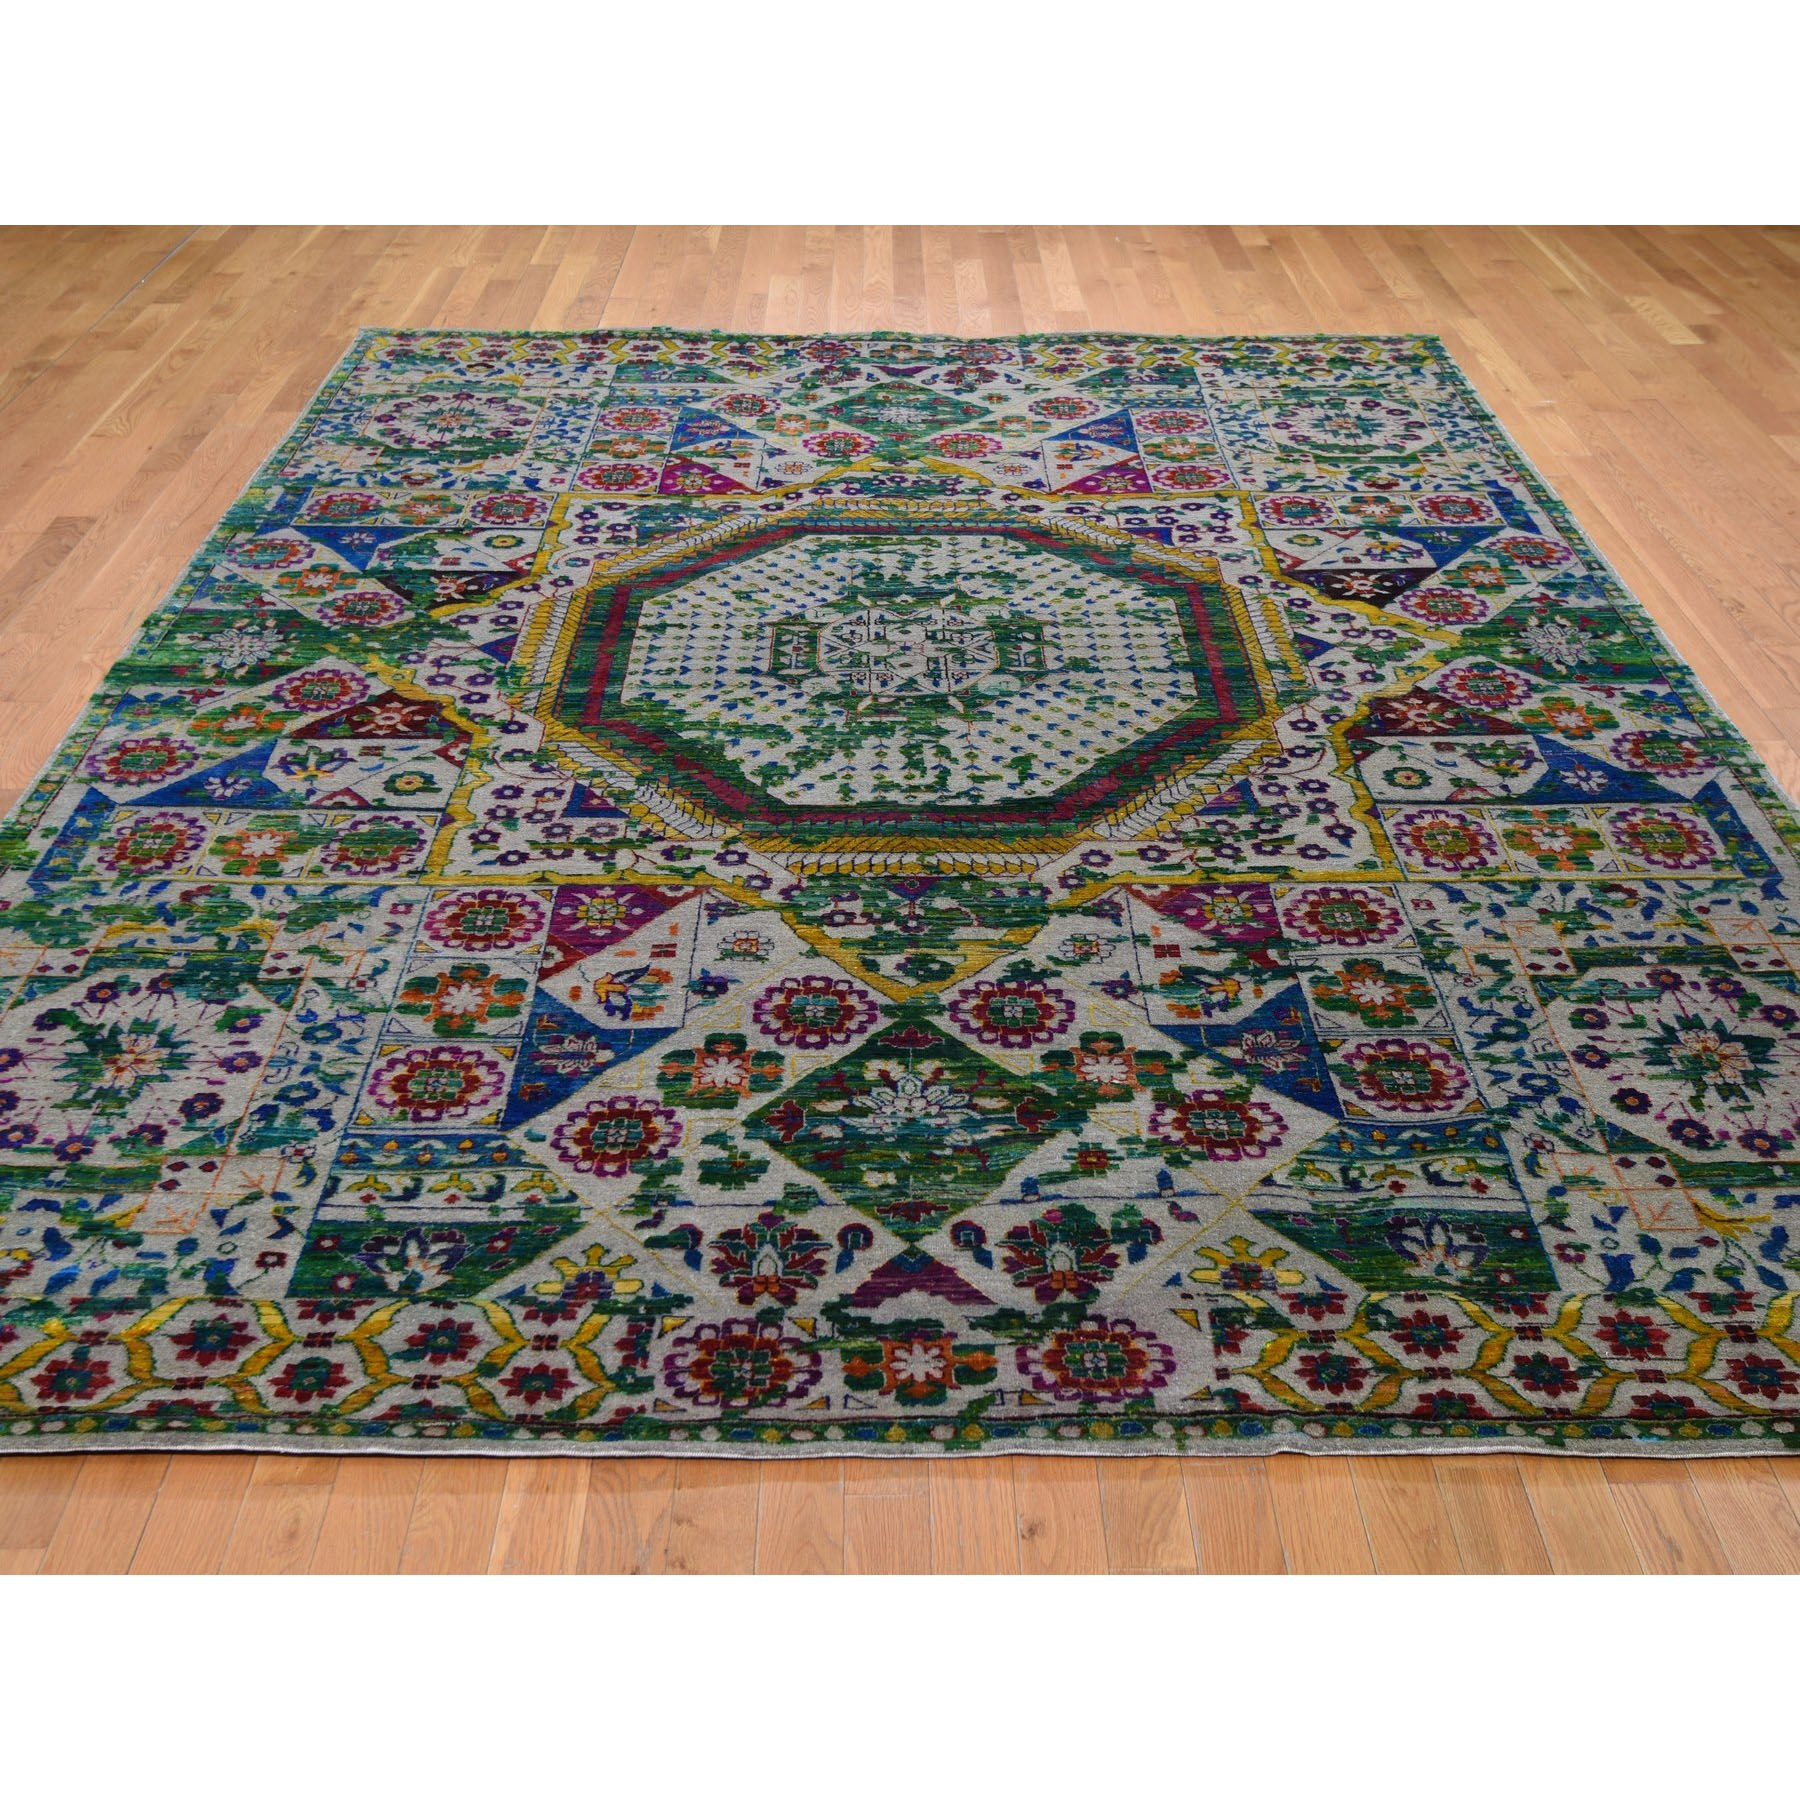 8-10 x12-1  Colorful Sari Silk Mamluk Design Hand Knotted Oriental Rug